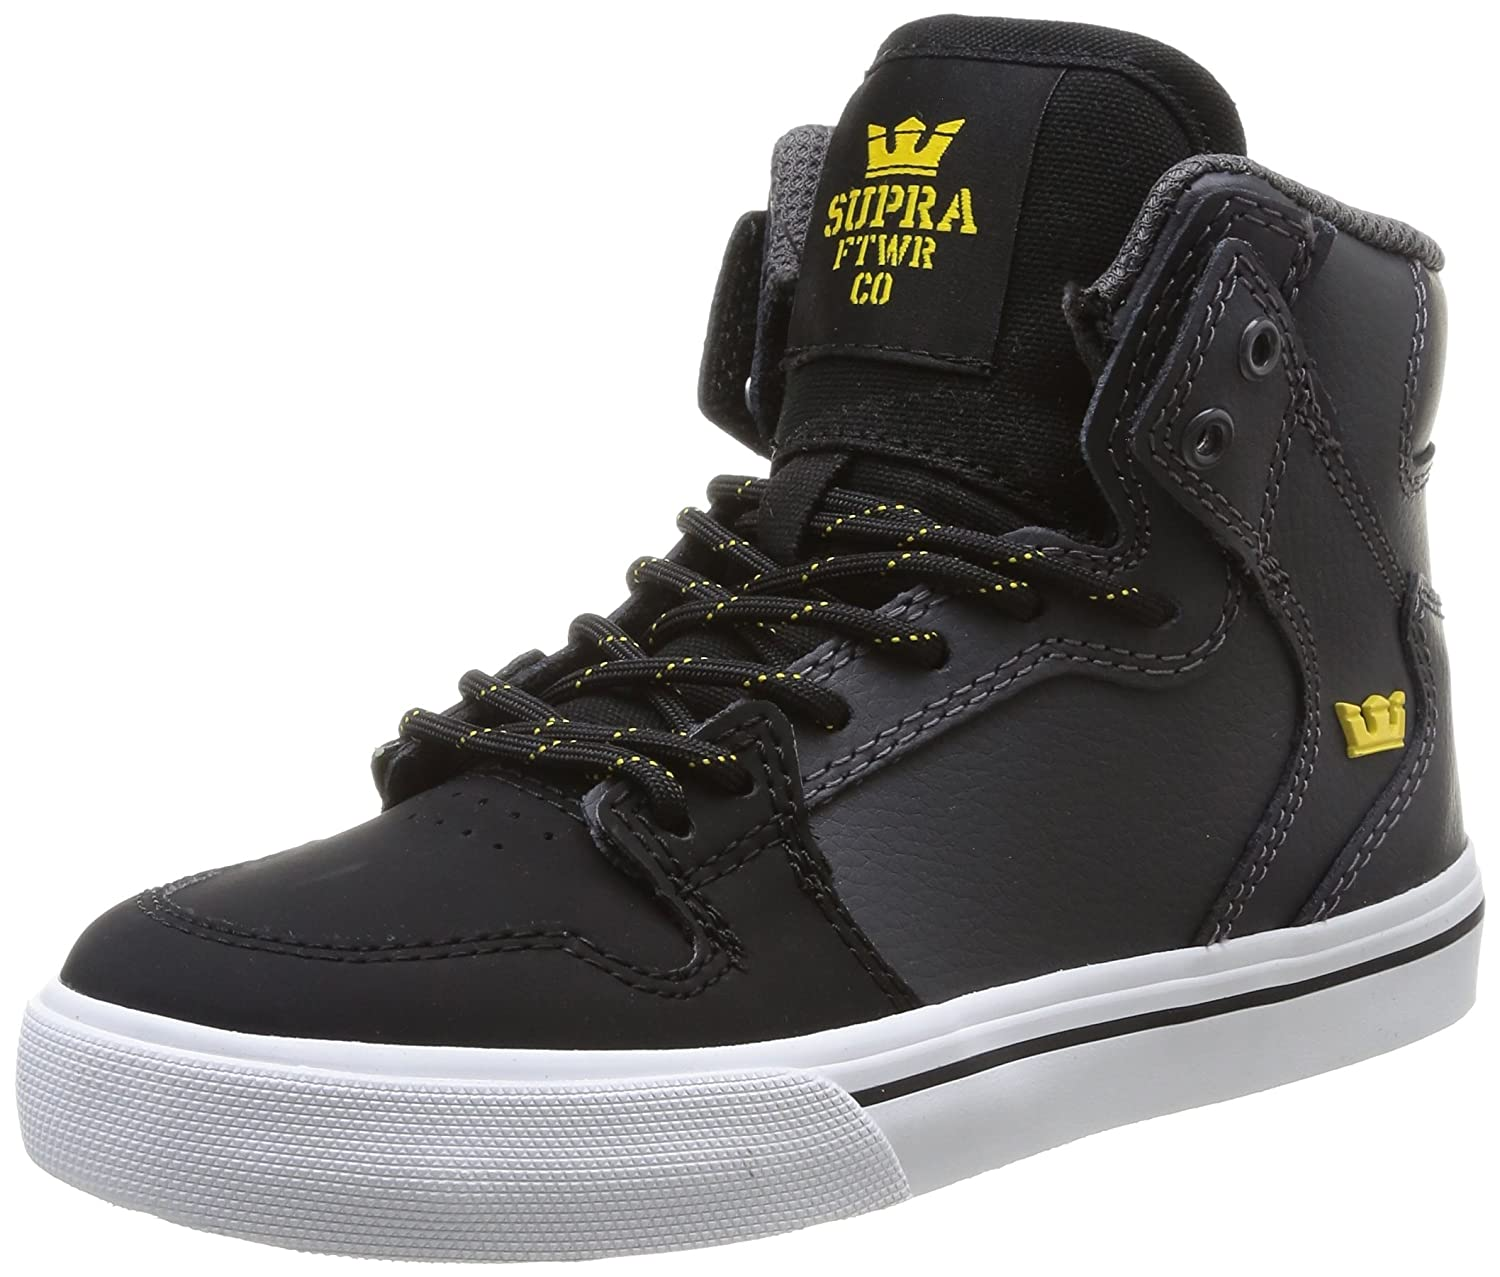 [Supra] Kids Vaider Grey/Black - White Skate Shoes